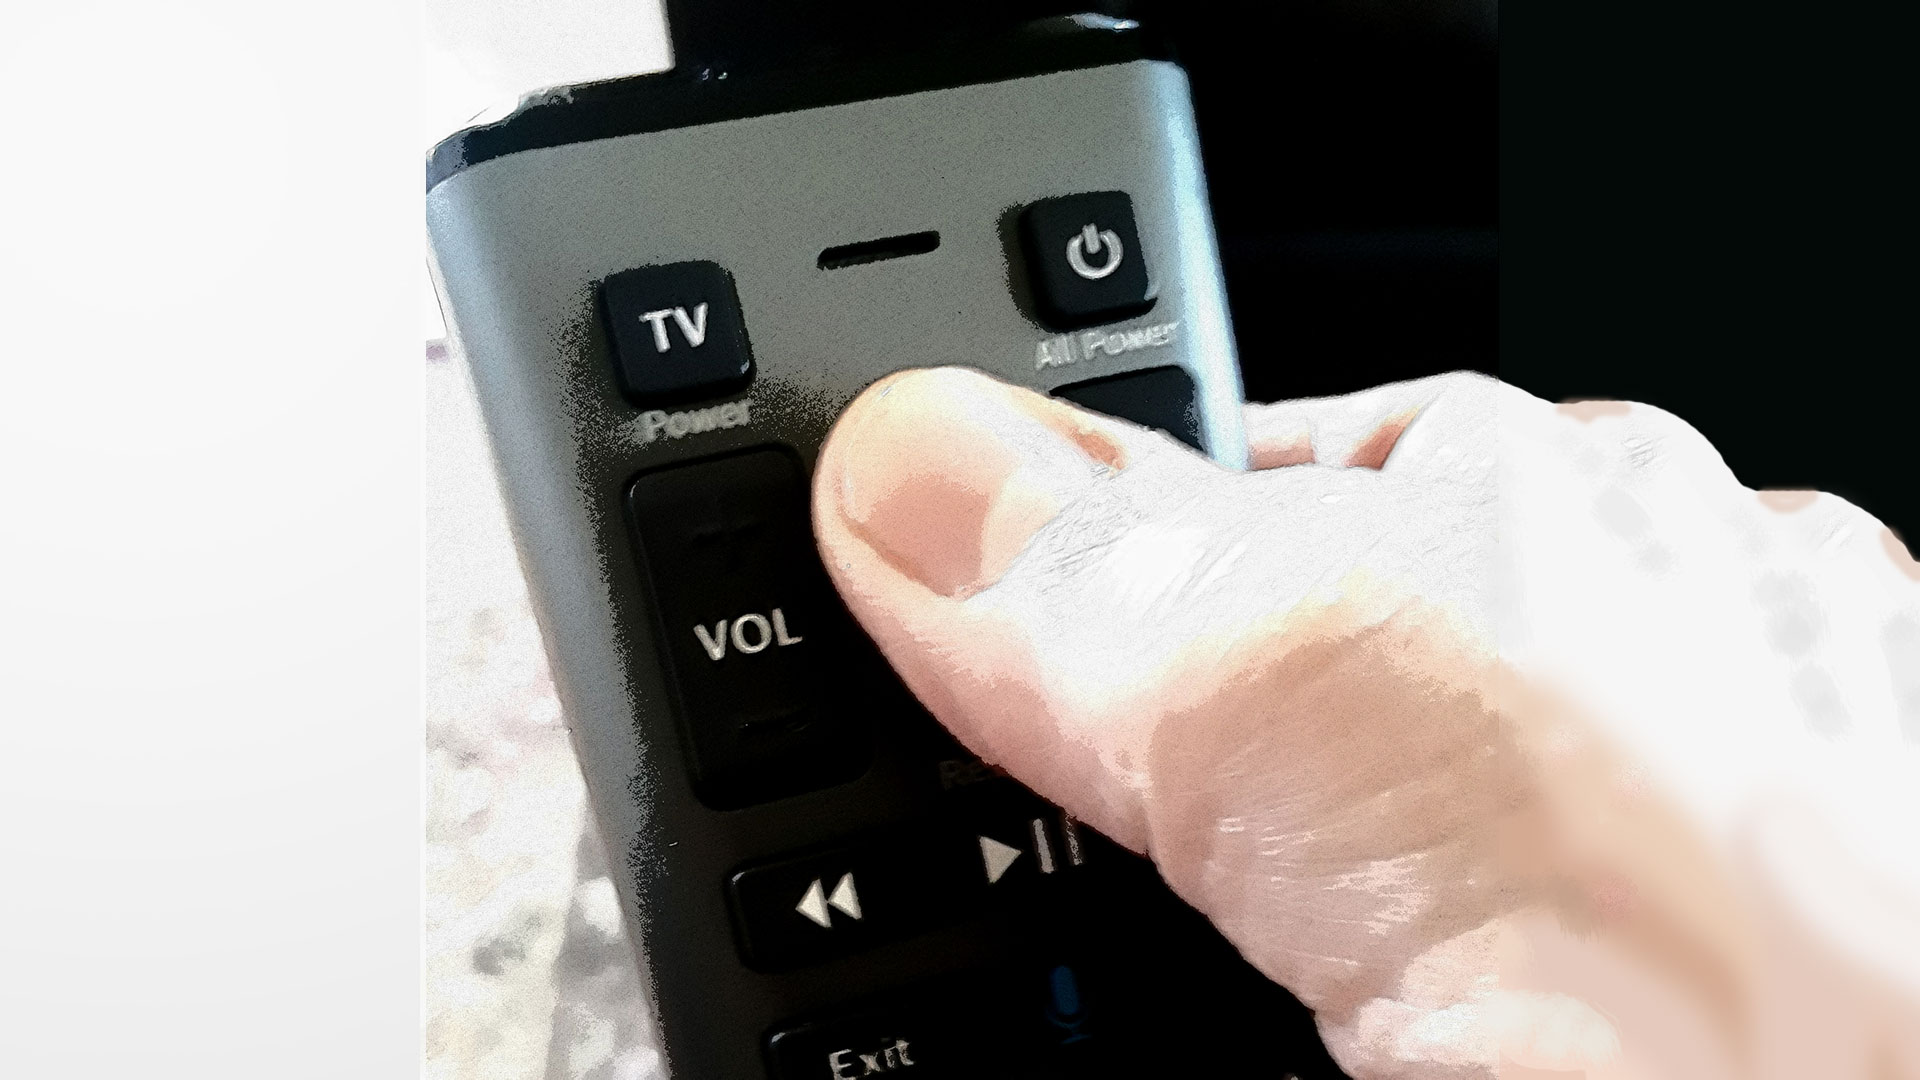 an elderly hand holding and using a specialized TV remote